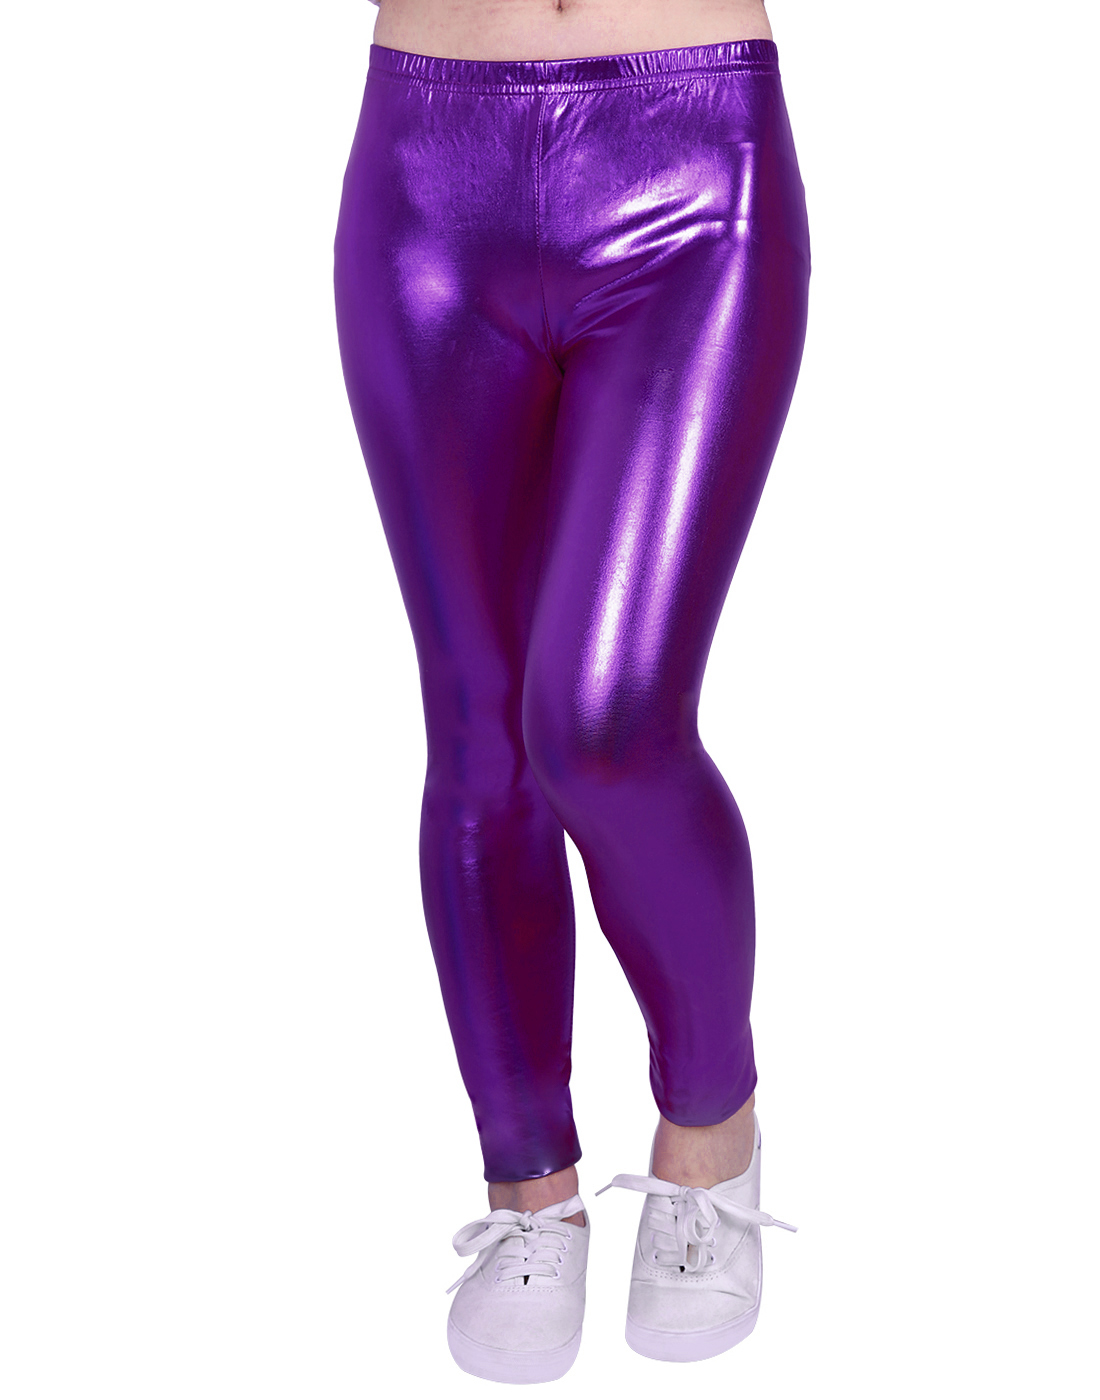 HDE Girls Shiny Wet Look Leggings Kids Liquid Metallic Footless Tights (Silver, 4/5)